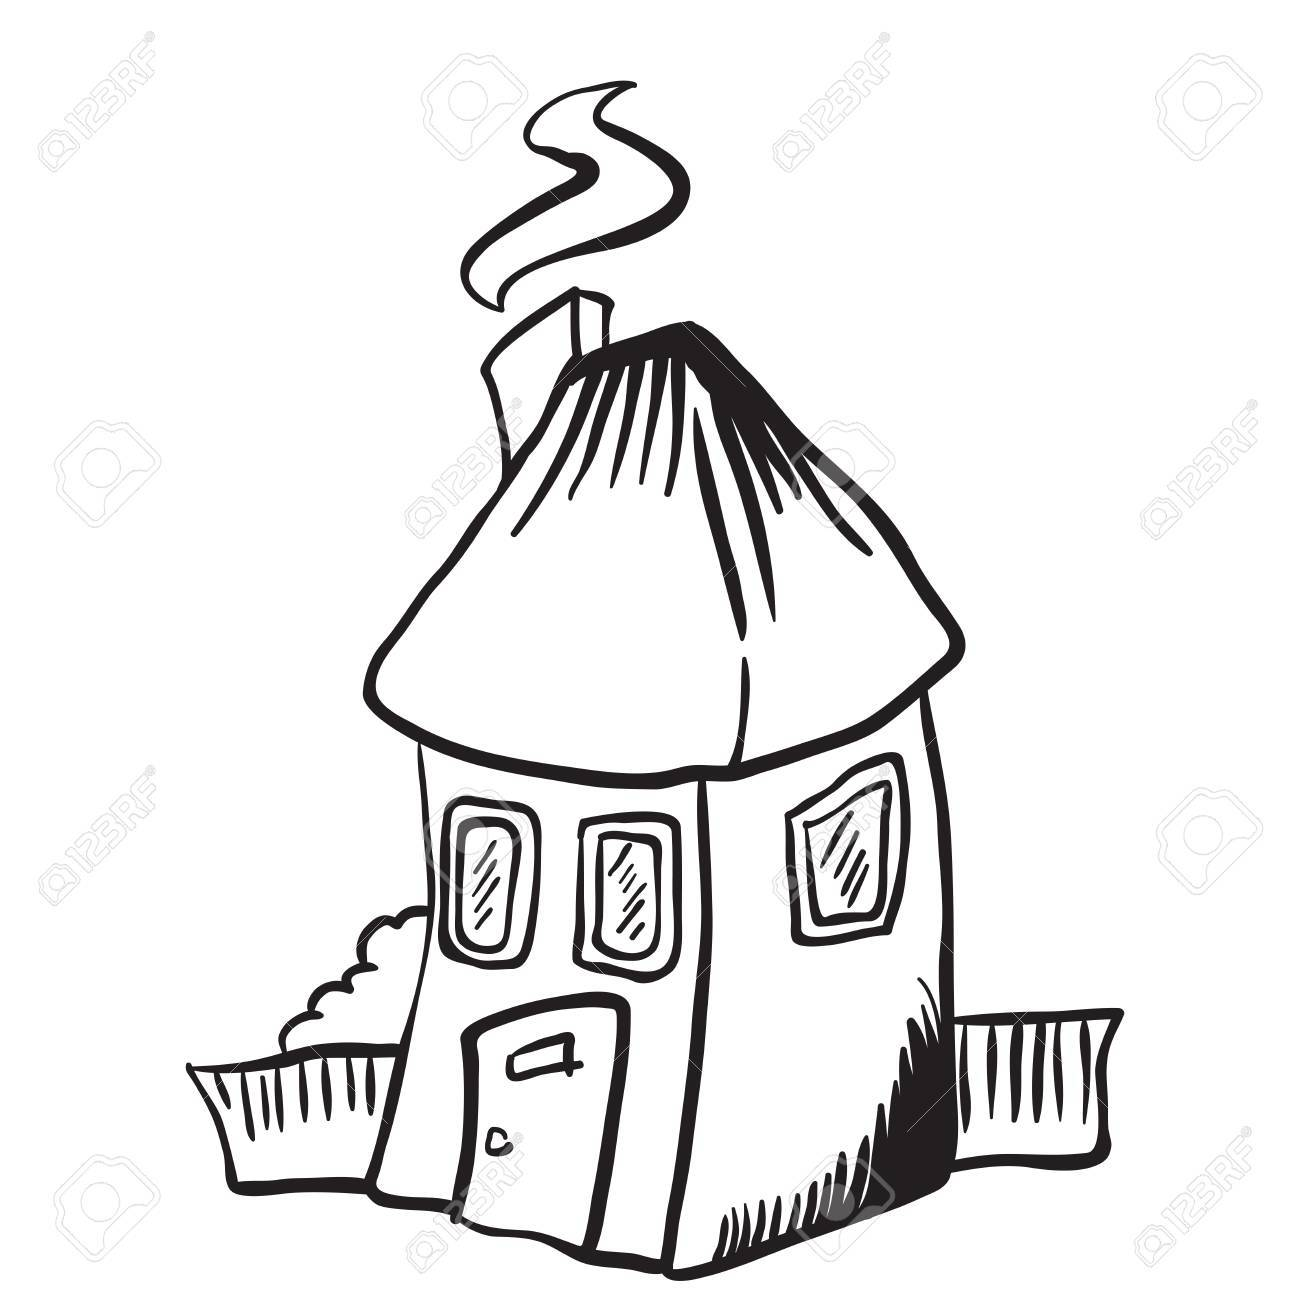 simple black and white little house isolated cartoon royalty free Black and White Cartoon Forest simple black and white little house isolated cartoon stock vector 55349424